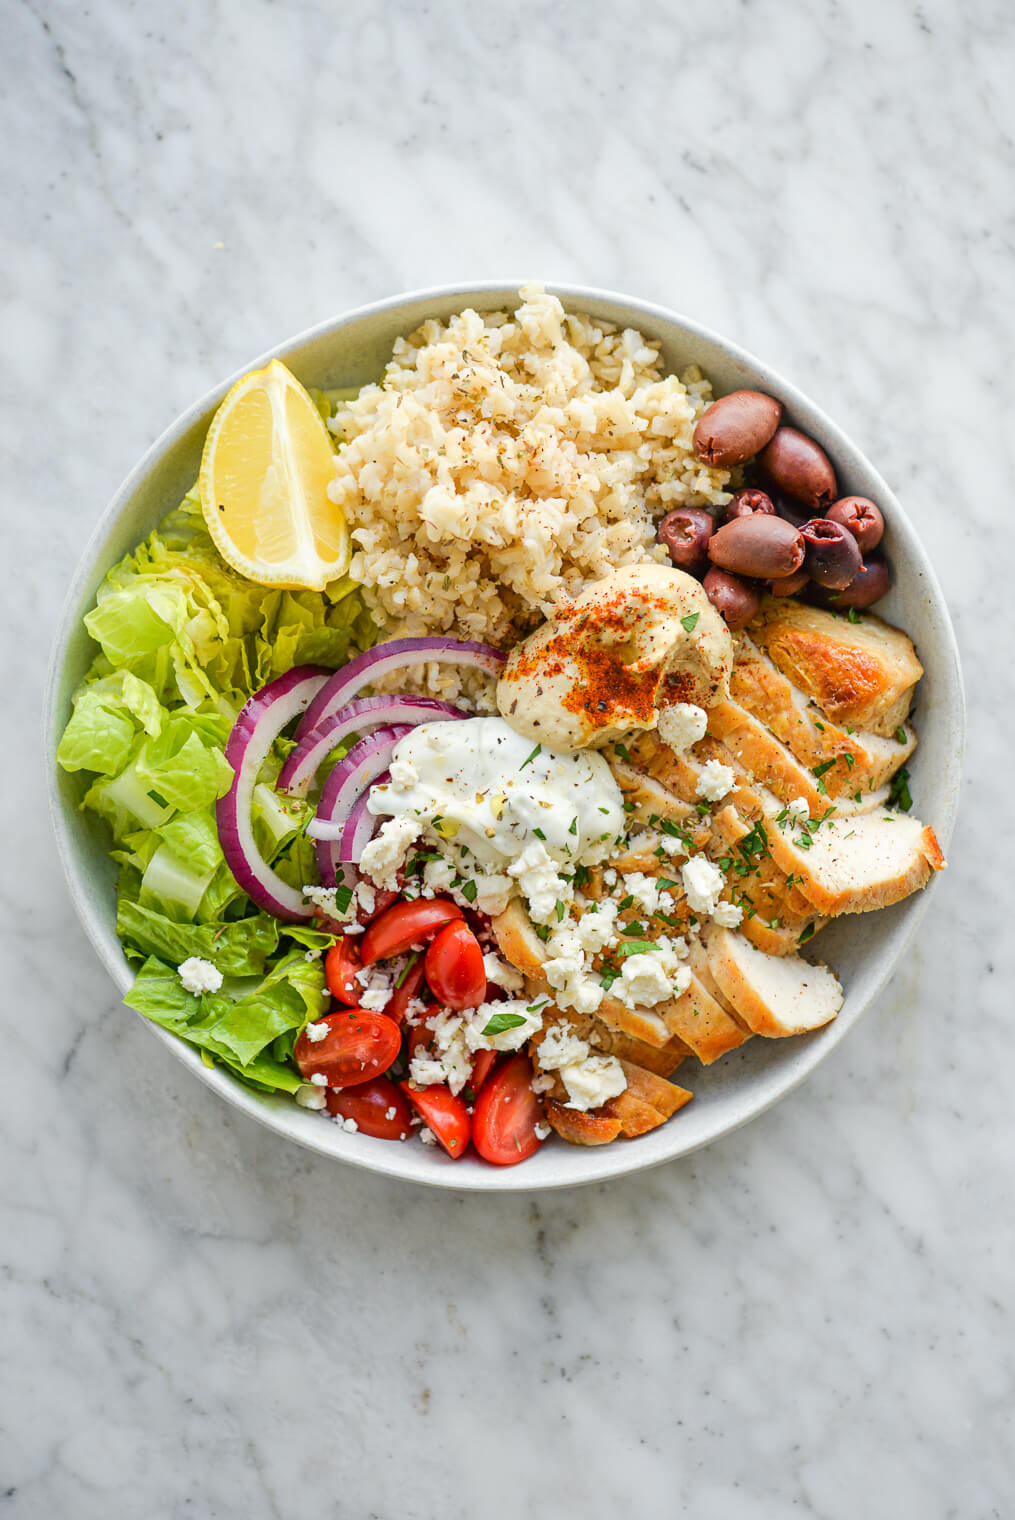 a green chicken power bowl made with brown rice, chicken, olives, cherry tomatoes, hummus, and lettuce